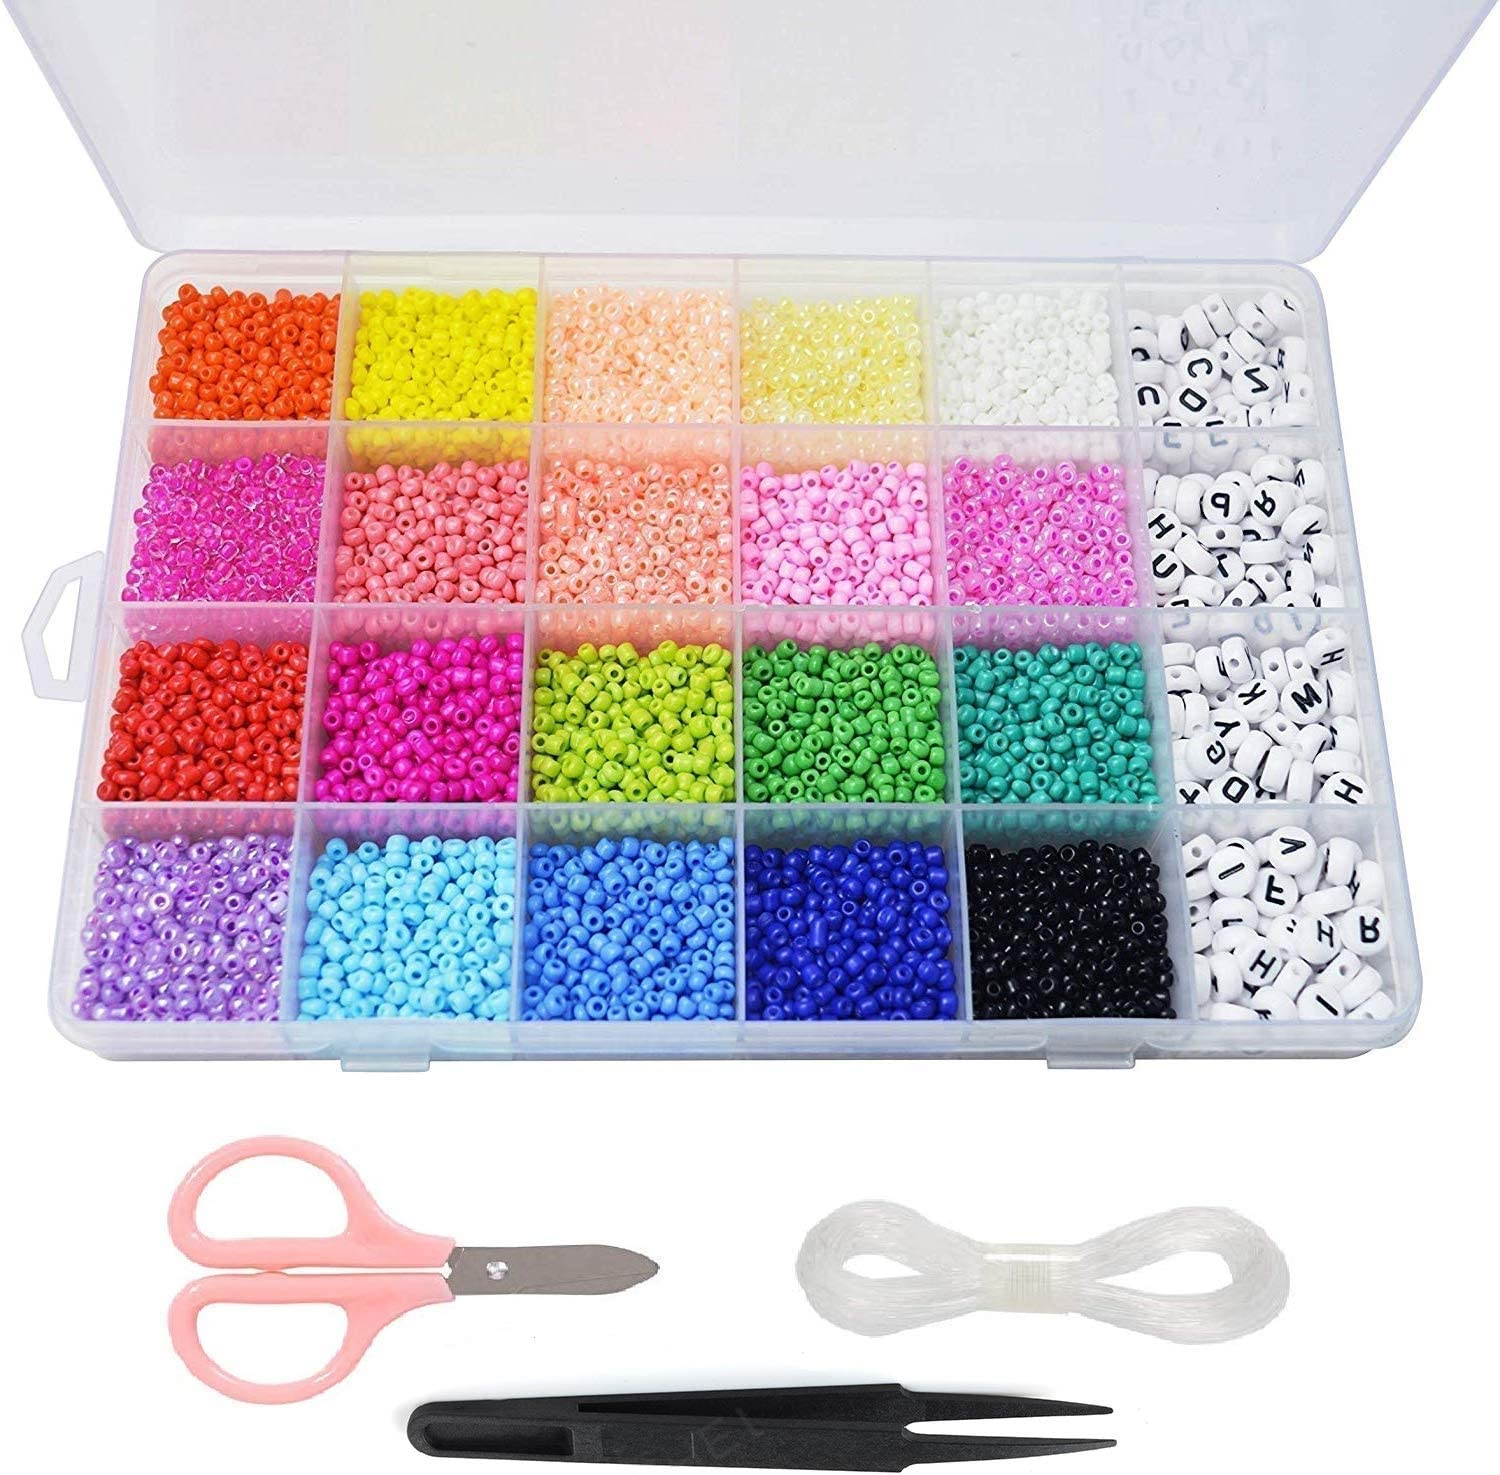 Beads Kit 10000pcs Glass Seed Beads 3mm Beads and 300pcs Alphabet Letter Beads for Name Bracelets Jewelry Making and Crafts, with 33 Feet Long Elastic String Cords,Scissors,Tweezers and Storage Box